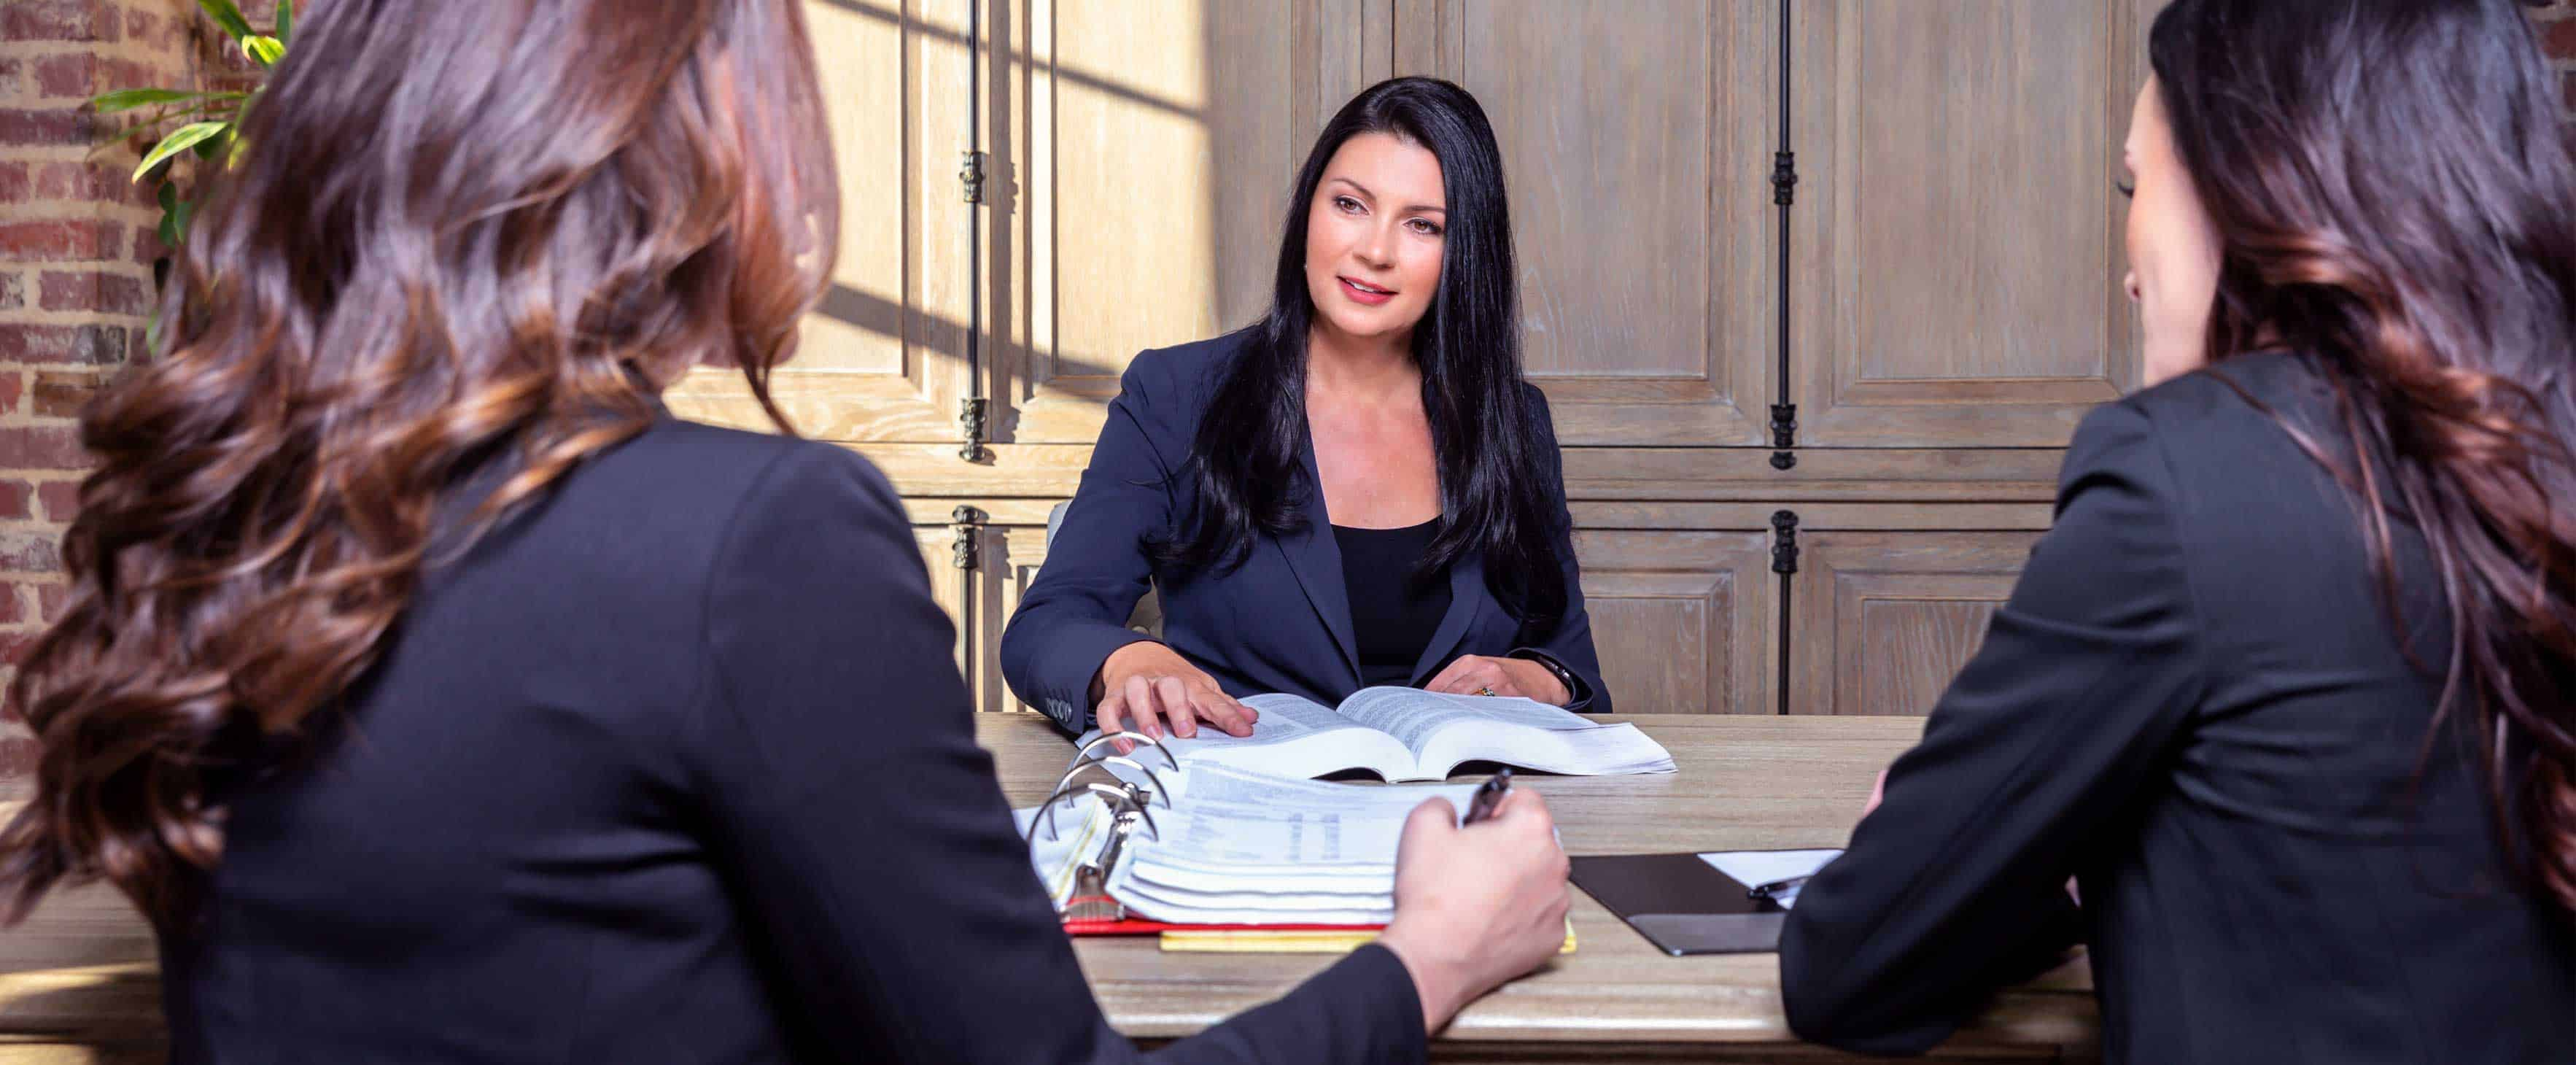 North Carolina Divorce Lawyers | Collins Family Law Group